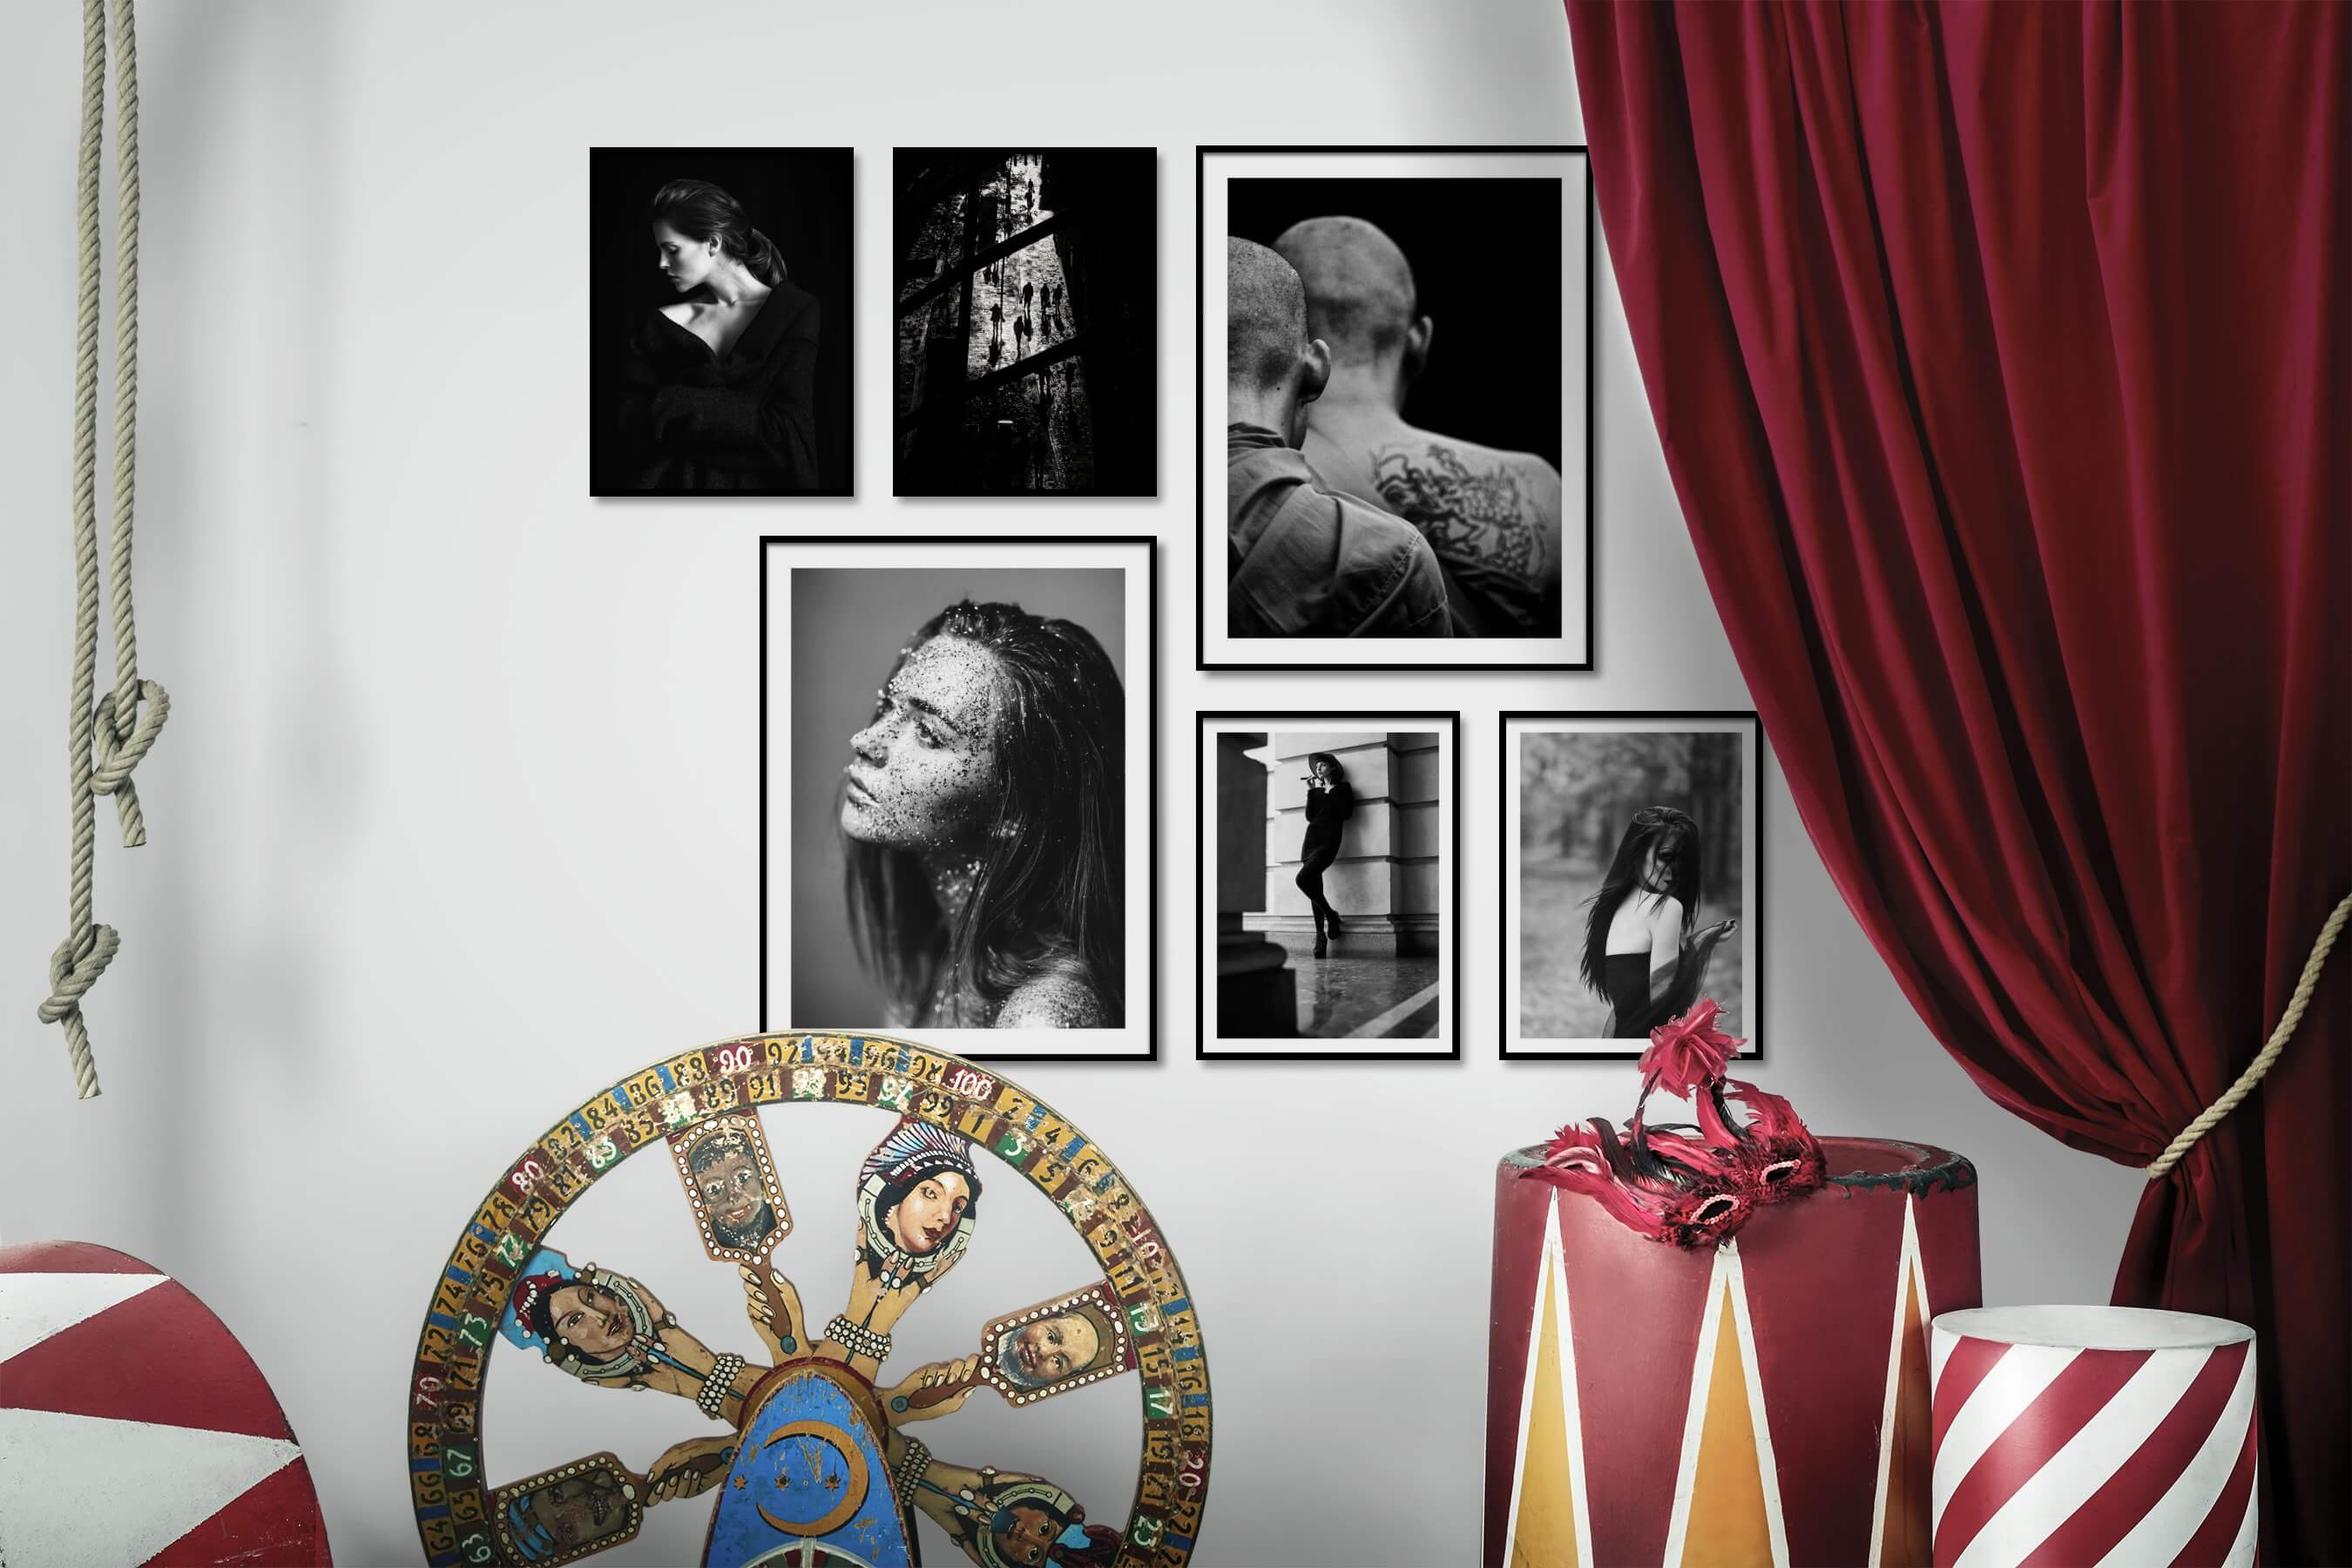 Gallery wall idea with six framed pictures arranged on a wall depicting Fashion & Beauty, Black & White, Dark Tones, For the Minimalist, City Life, and Artsy